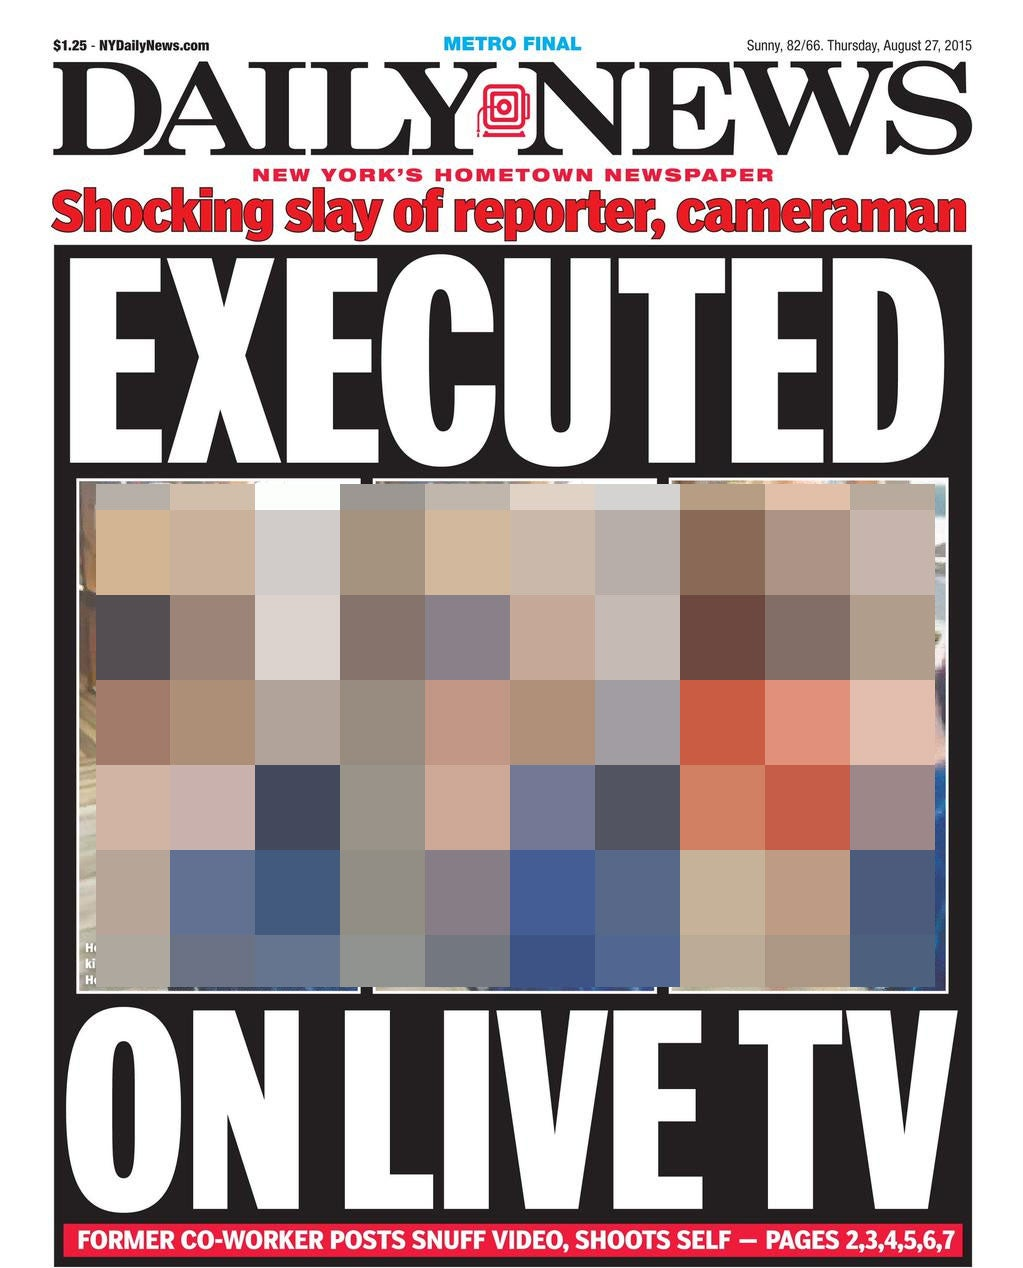 New York Daily News: Virginia Shooting: New York Daily News And Other